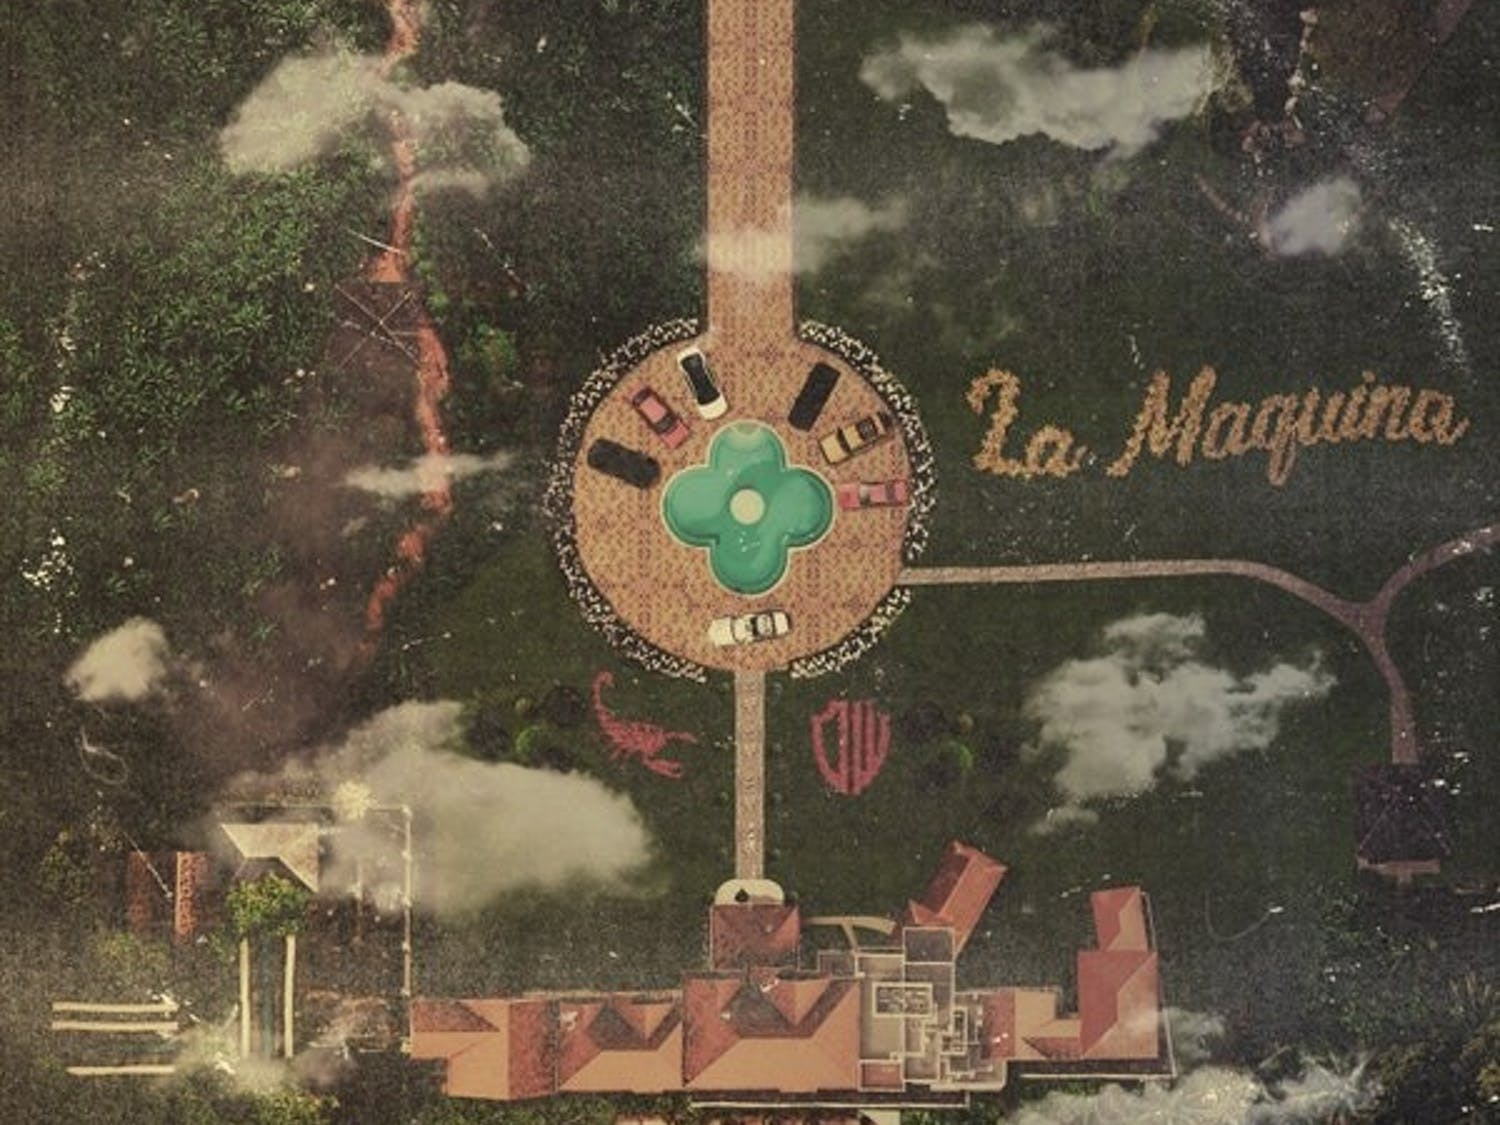 """Only two months after his last project, """"If It Bleeds It Can Be Killed,"""" Conway brings another tale of arrogance-induced cinematic hip-hop with """"La Maquina,"""" which lets his wacky yet assertive persona shine across 11 tracks."""